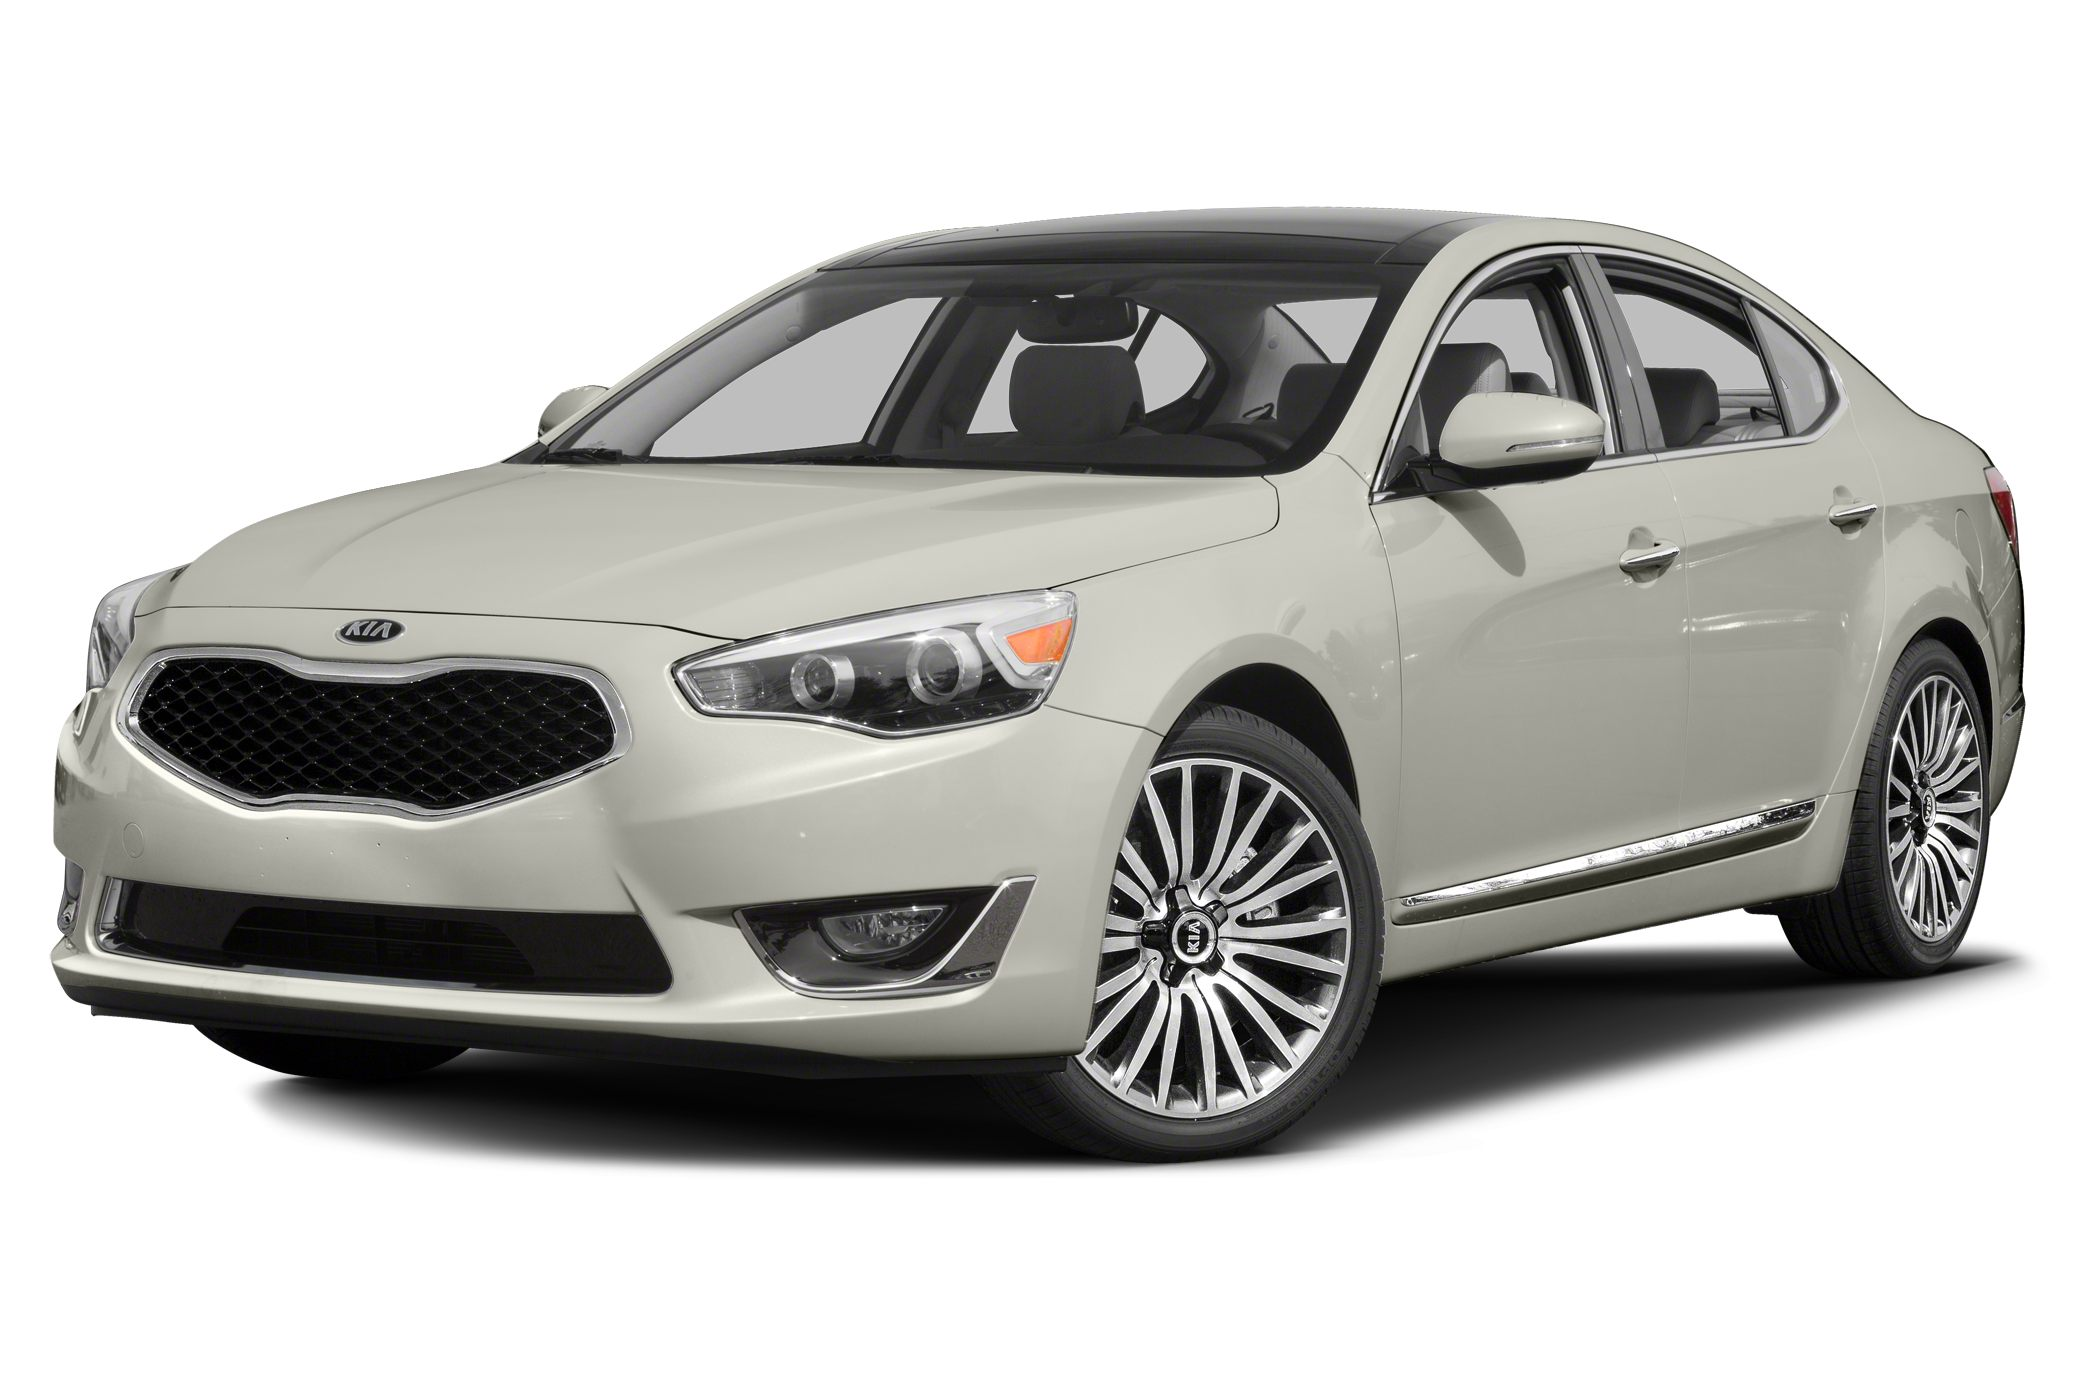 USC60KIC151B021001 Cool Review About 2017 Kia Cadenza Release Date